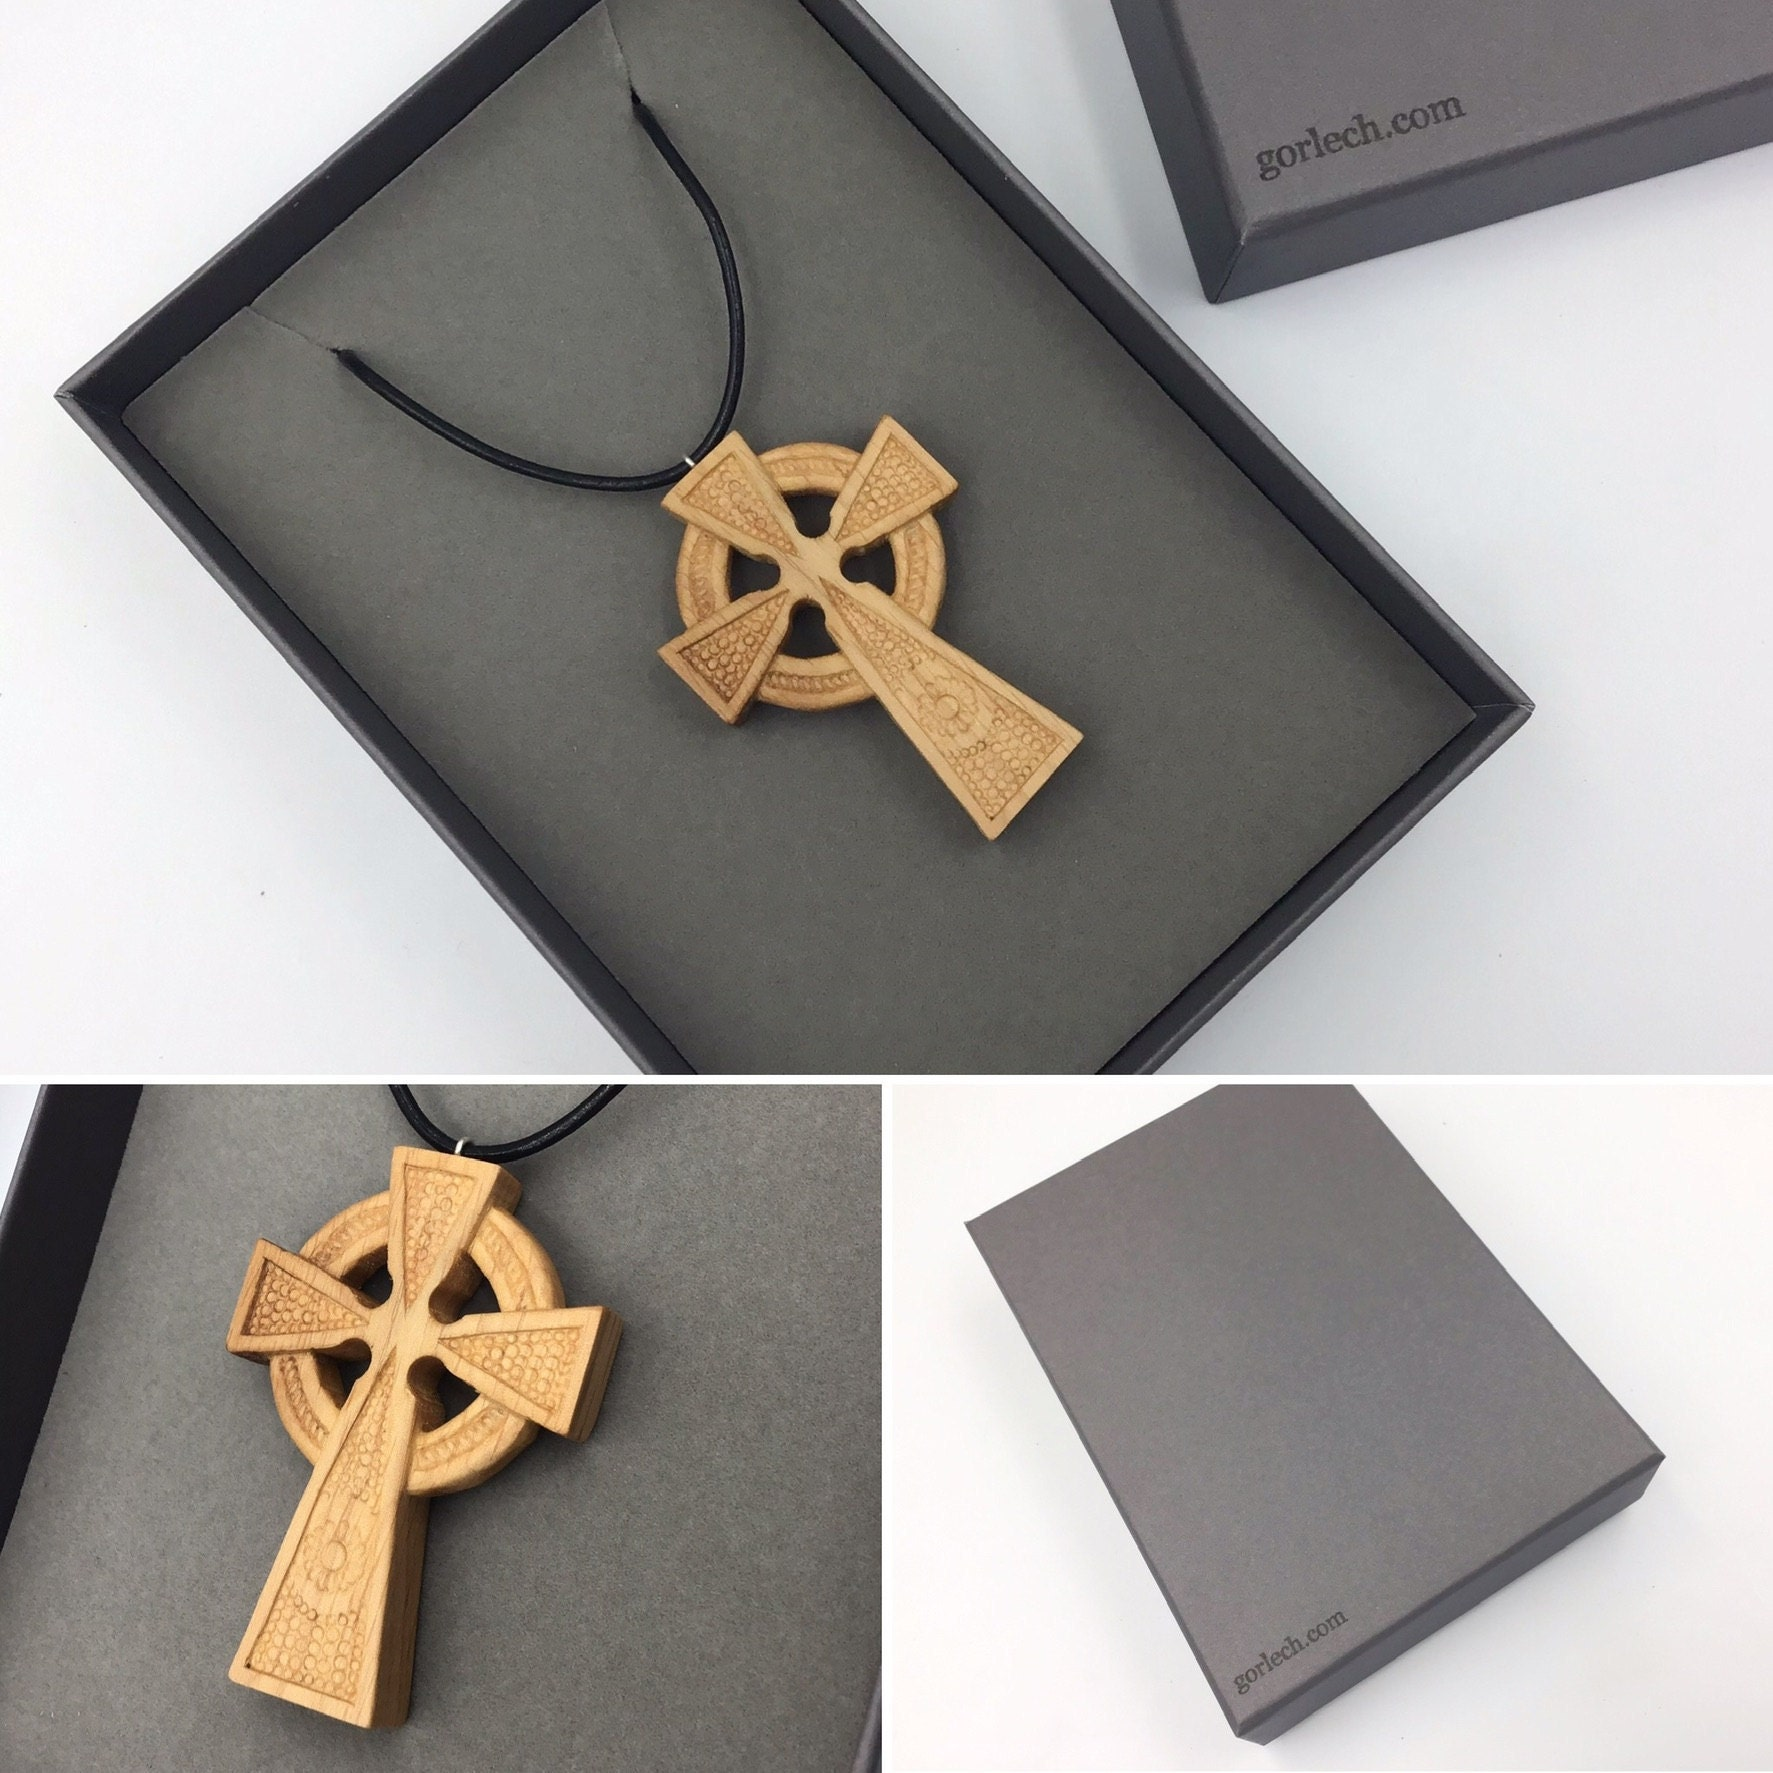 Celtic Cross pendant - hand carved by Paul from Gorlech UK